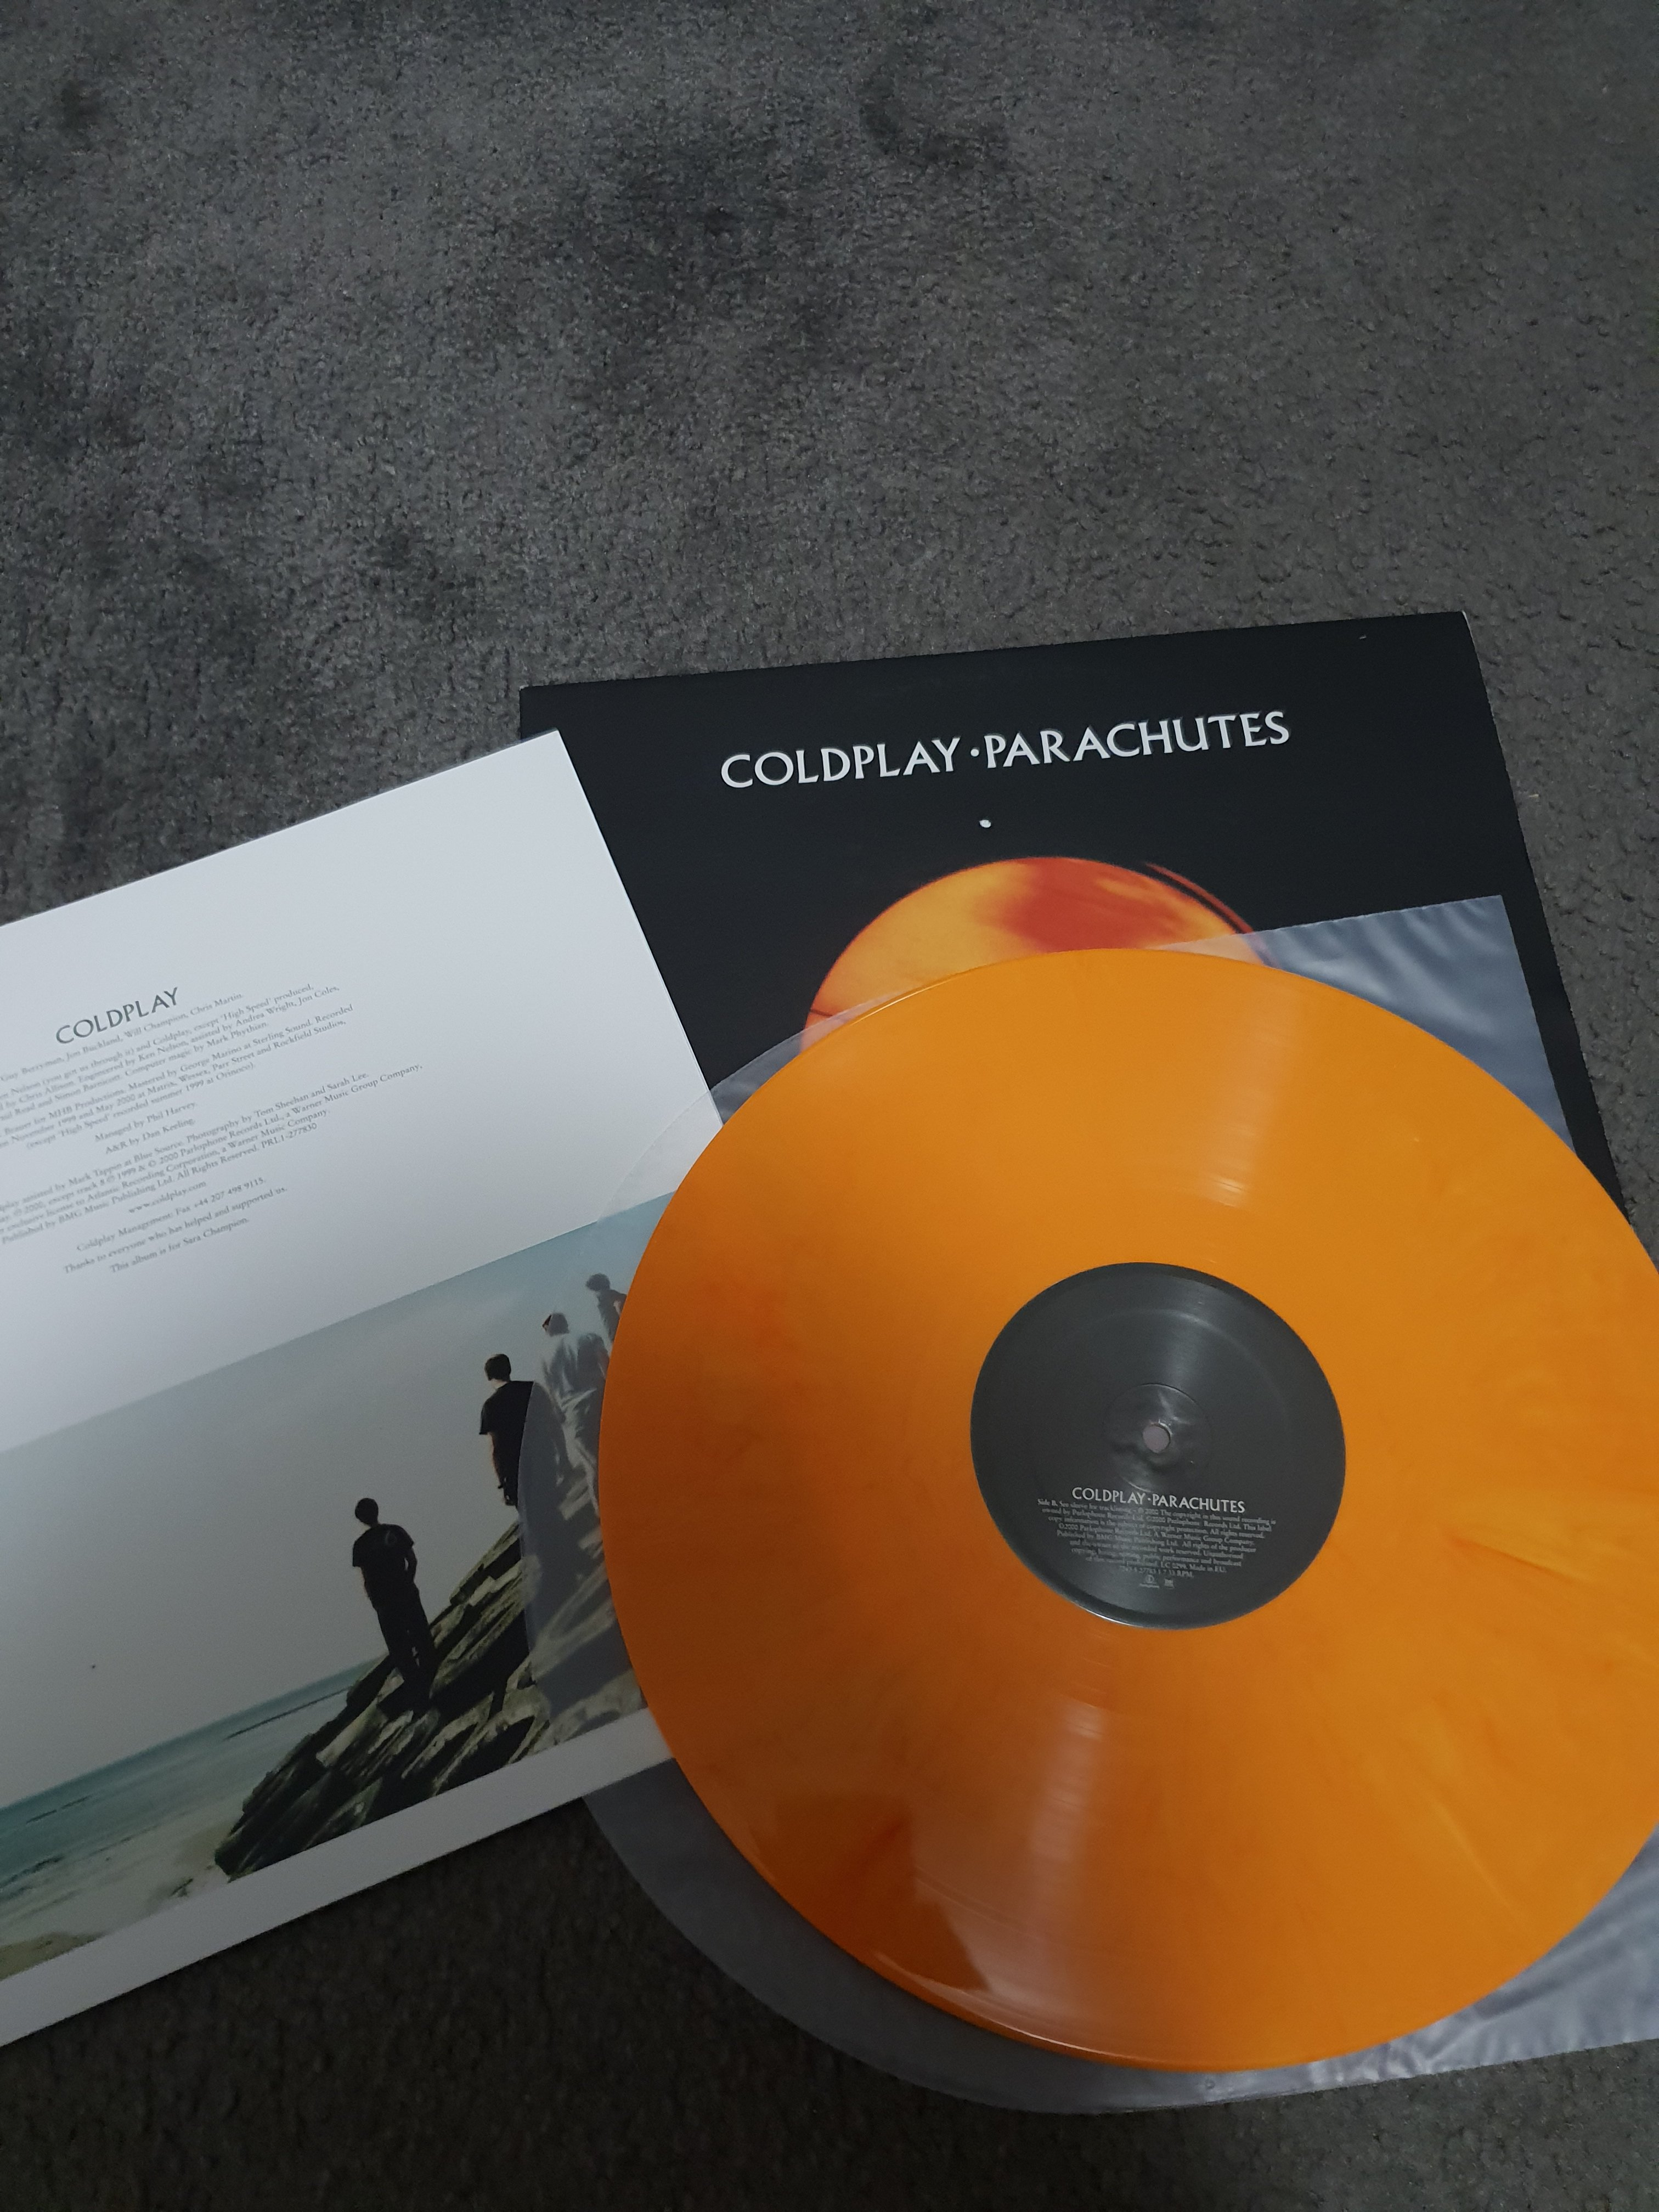 FS: Coldplay - Parachutes limited edition ORANGE vinyl - Classifieds